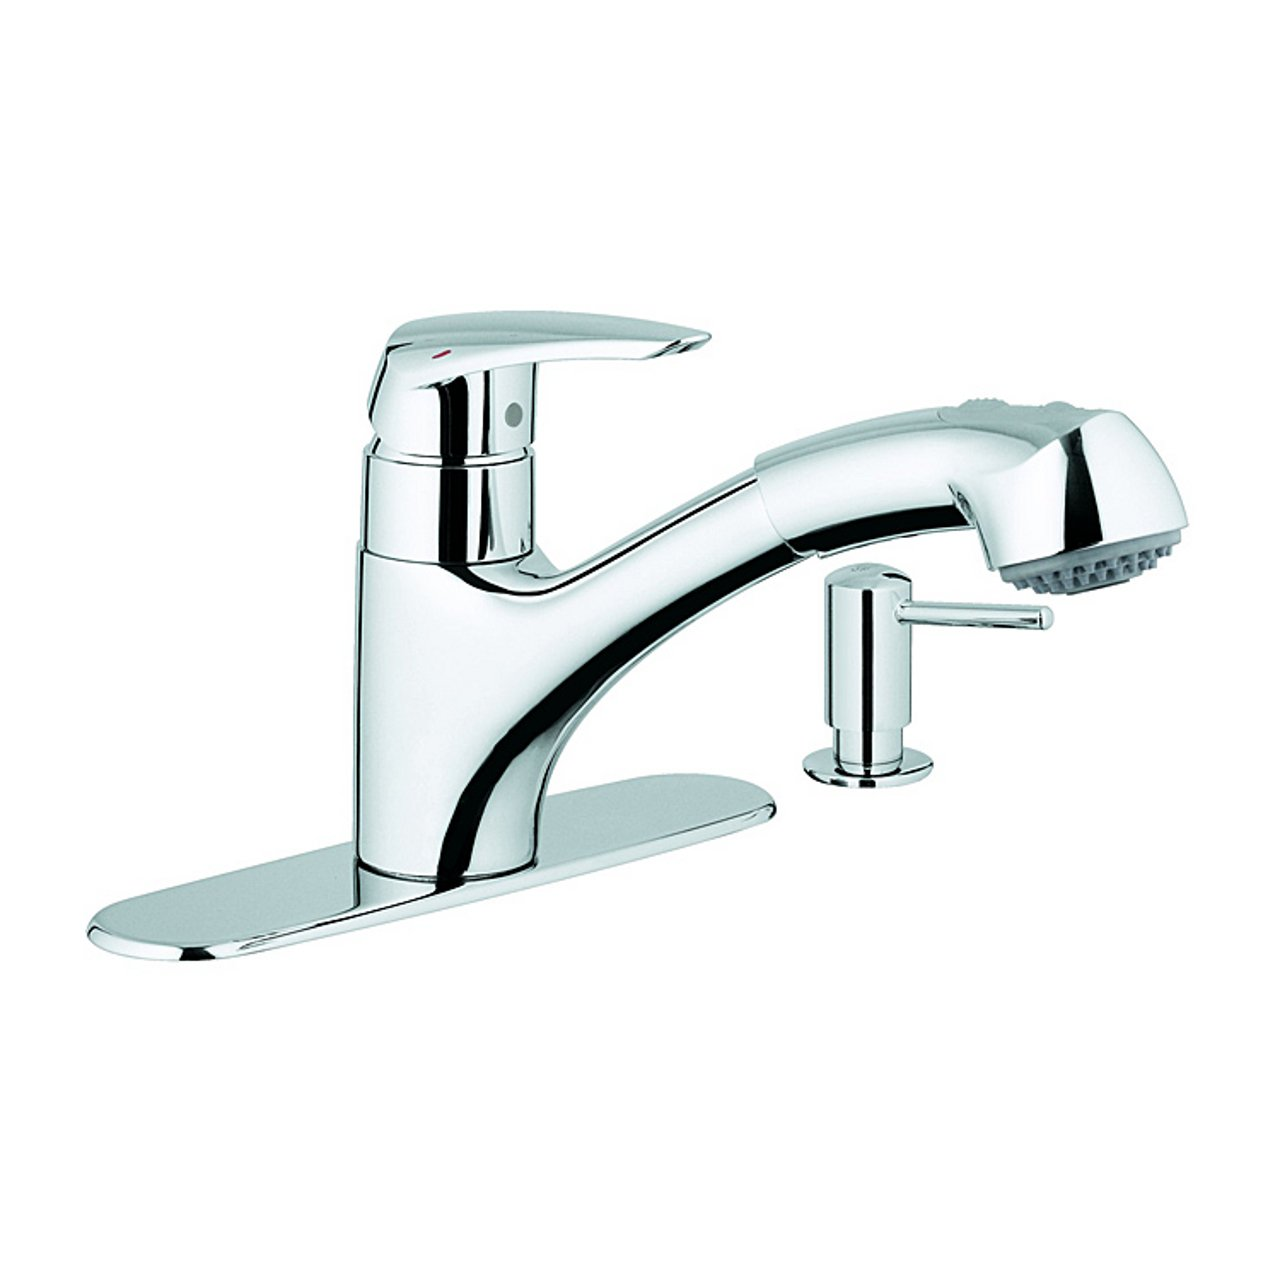 grohe 30127000 kitchen faucet with dual spray pull out spout and